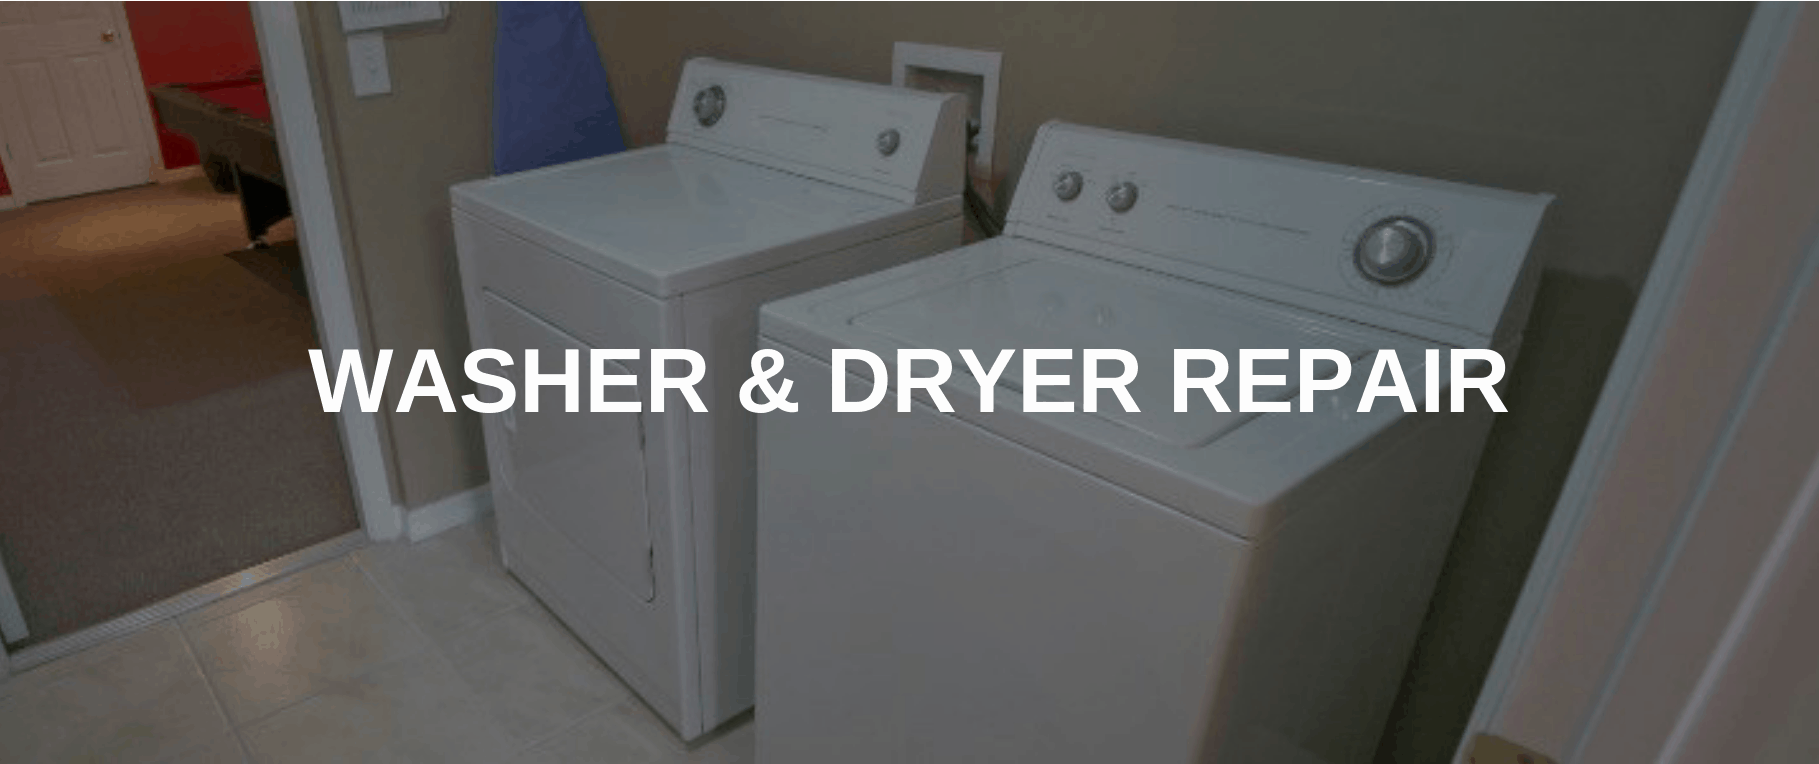 washing machine repair lancaster